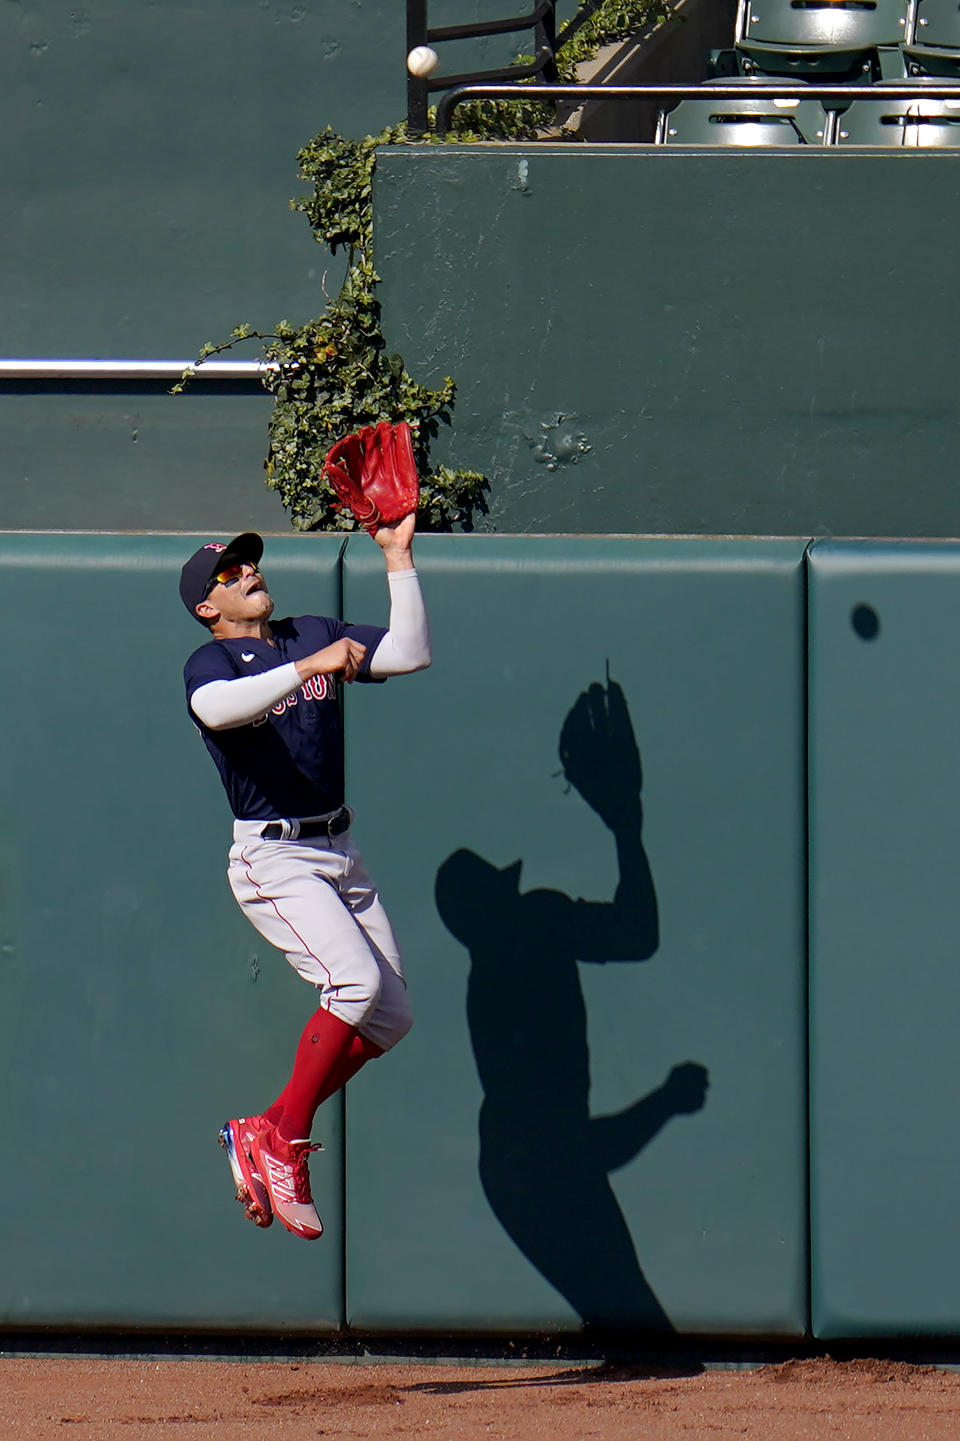 Boston Red Sox center fielder Enrique Hernandez goes up to make a catch near the wall on a ball hit by Baltimore Orioles' Rio Ruiz during the eighth inning of a baseball game, Sunday, April 11, 2021, in Baltimore. (AP Photo/Julio Cortez)